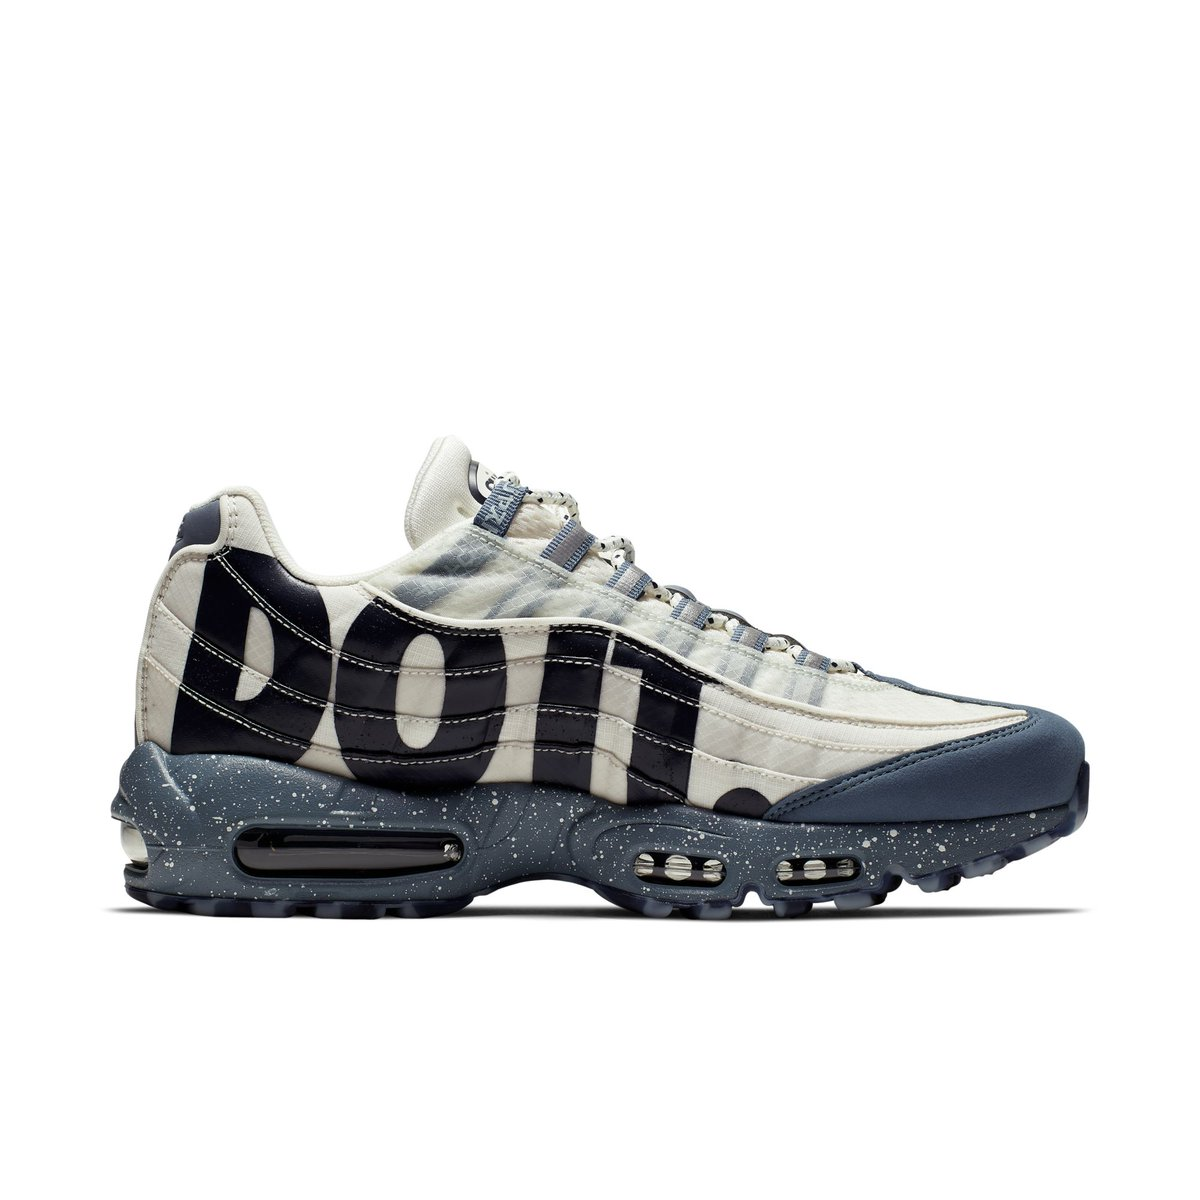 huge selection of 93ad6 d17ed Another 'Just Do It' Nike Air Max 95 Premium has been ...